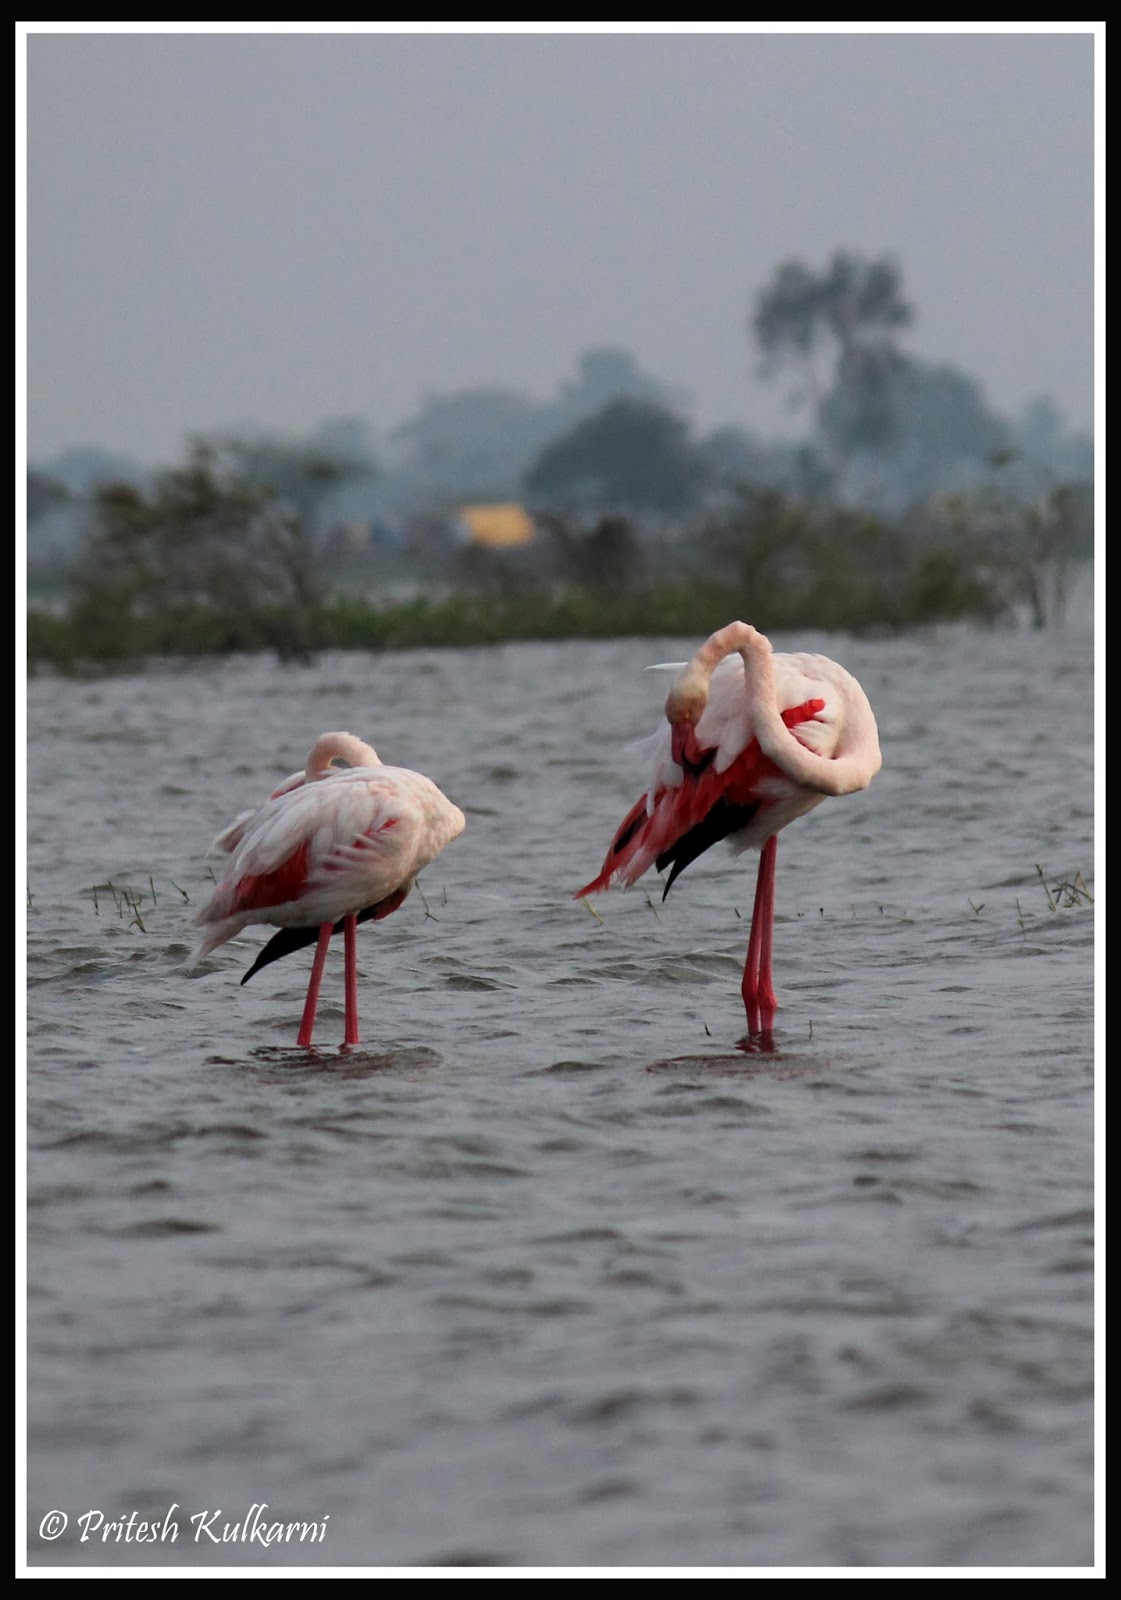 Check my Neck - Greater Flamingo